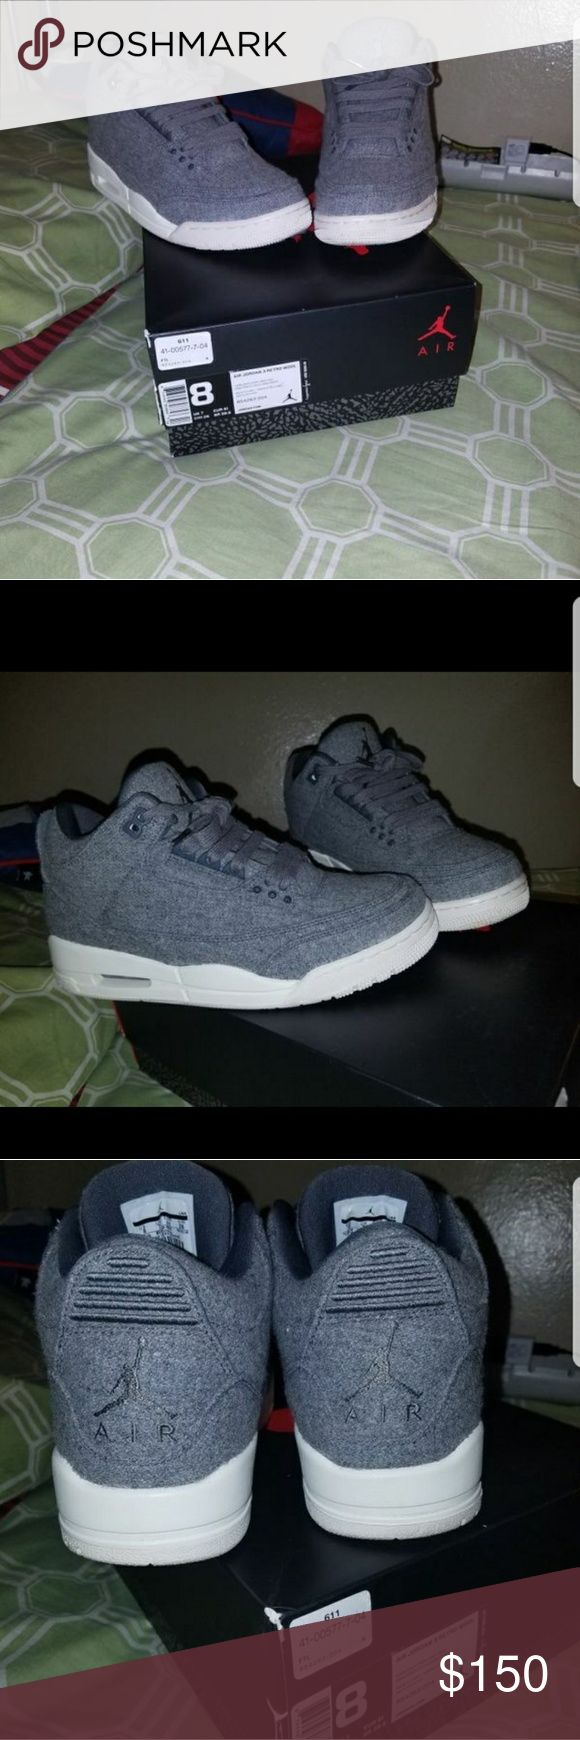 Air jordan Wool 3s og all original box size 8 Wool 3s size 8 worn twice 10/10 no heel drag perfect conditions asking 150 or best offer Air Jordan Shoes Sneakers